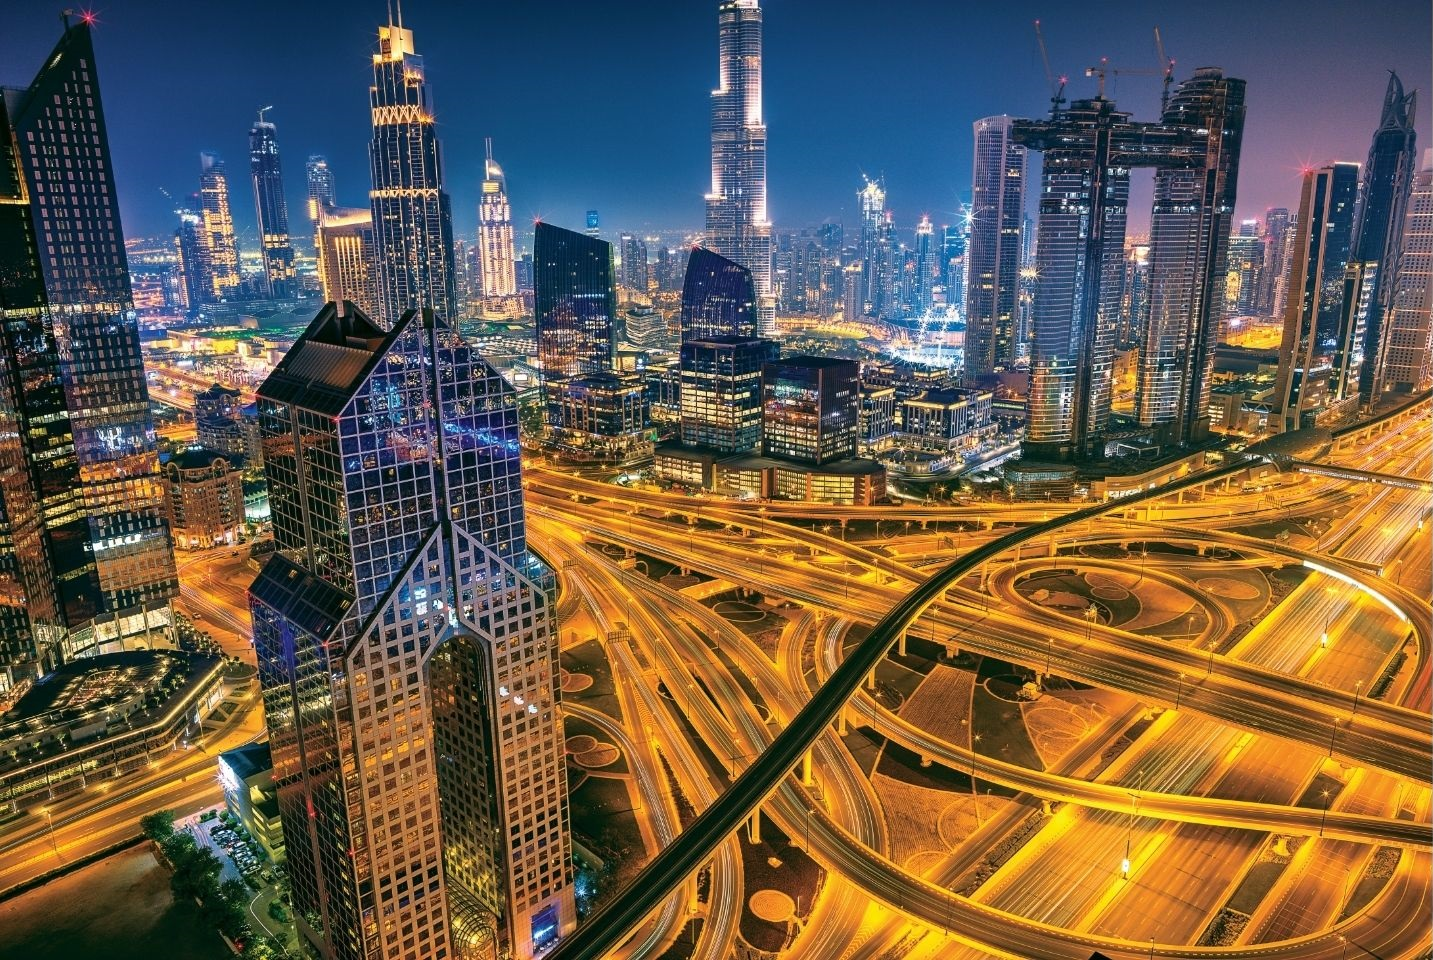 Analysis of Travel and Tourism in Dubai